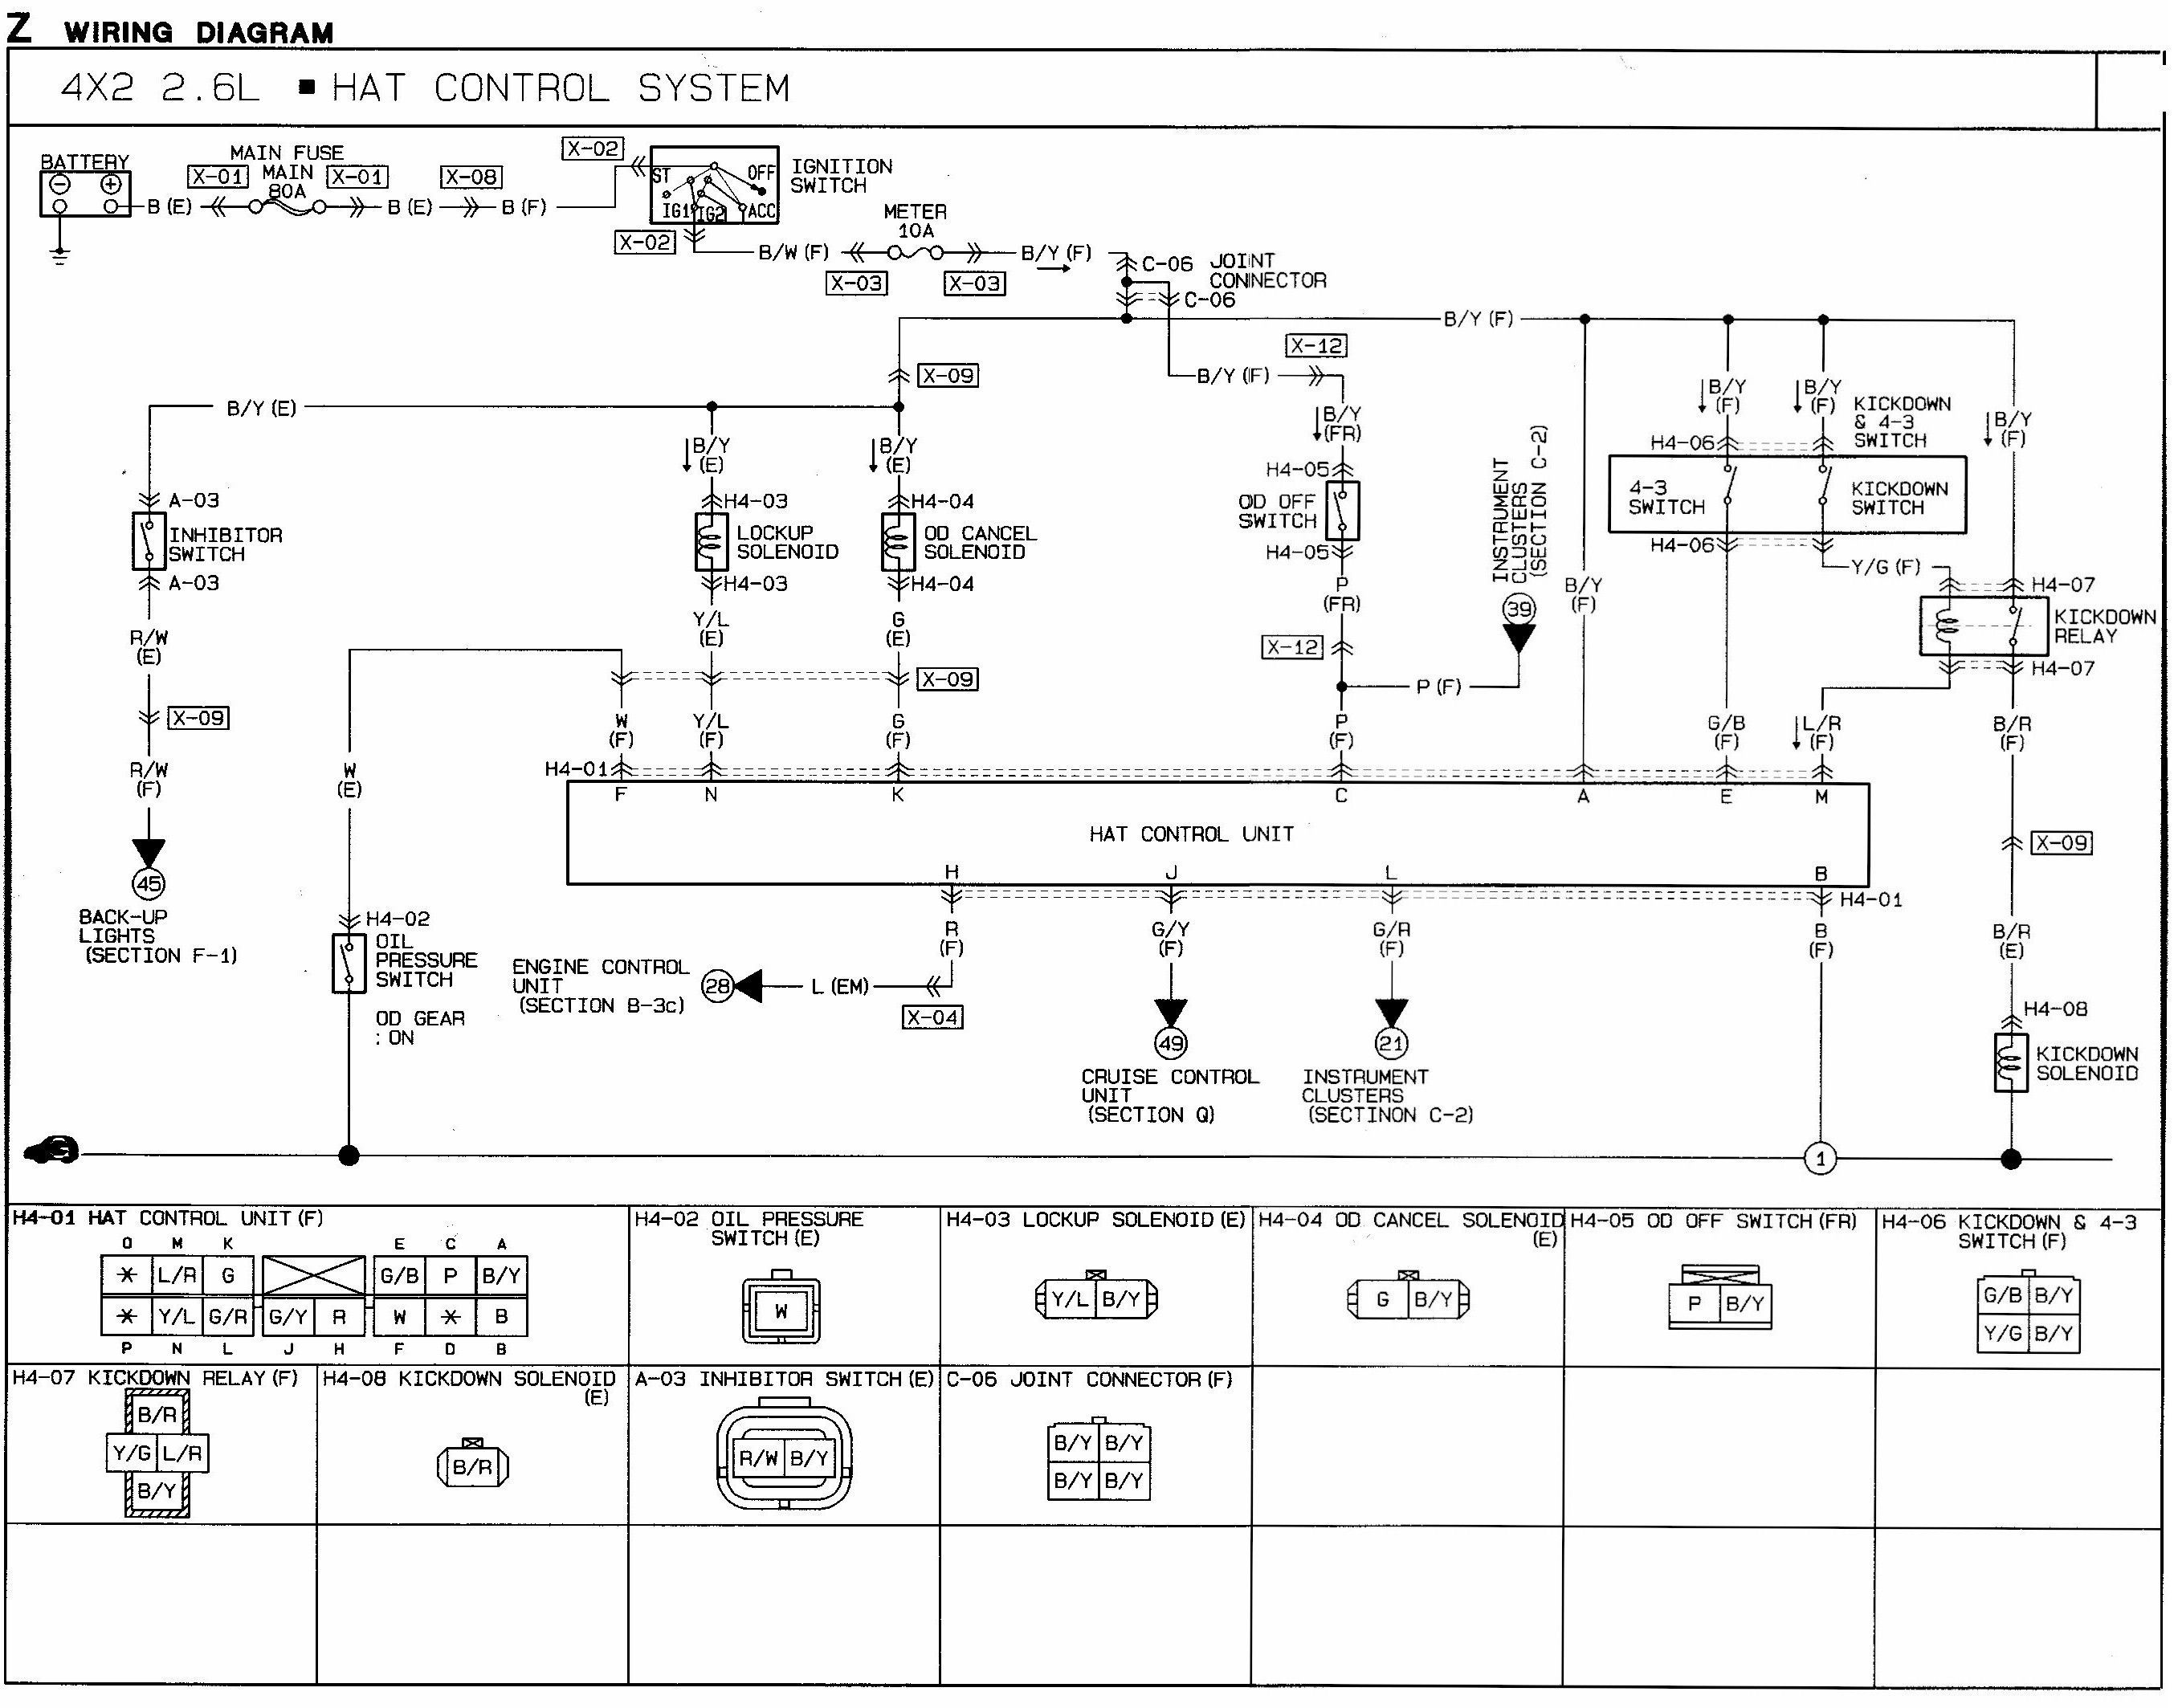 Wiring Diagram Acronyms